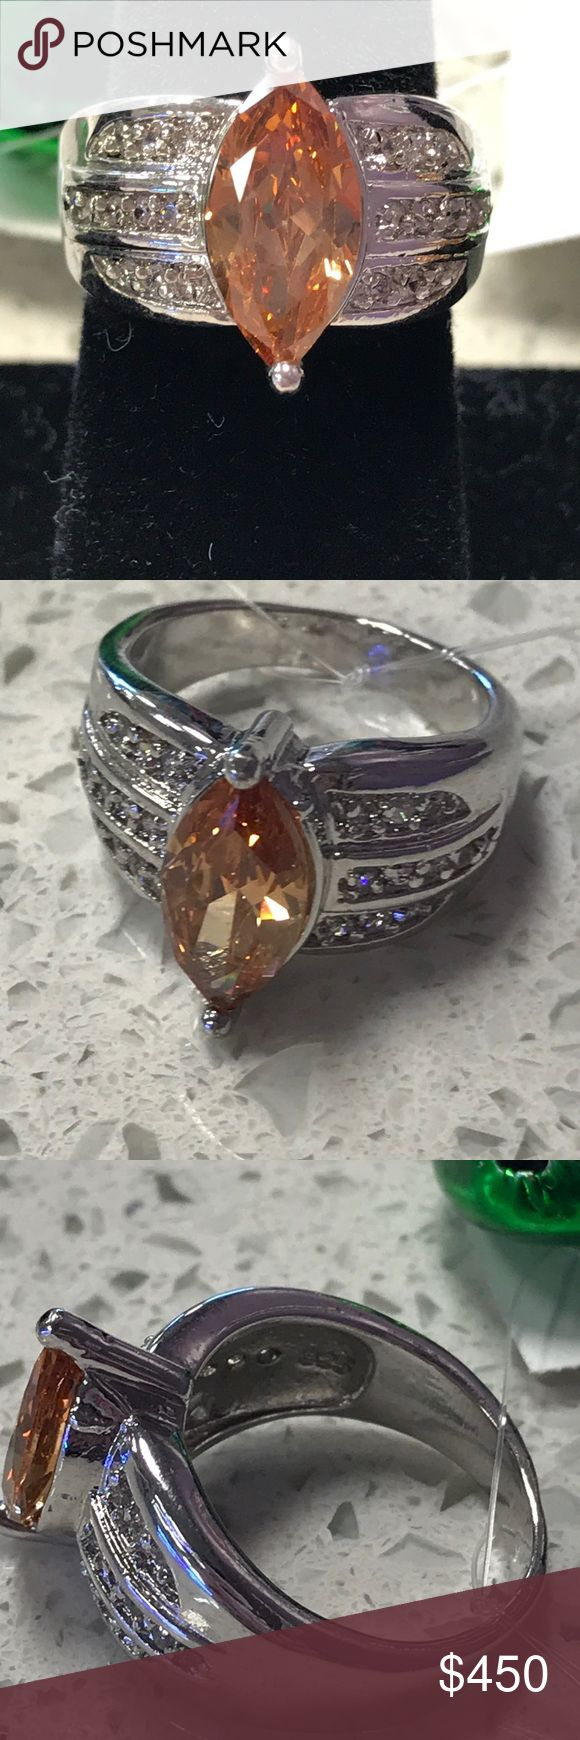 925 Sterling Silver Orange Citrine Size 8 Simply Gorgeous 925 Sterling Silver Orange Citrine with Genuine Diamond accents Size 8 Excellent Condition! Jewelry Rings